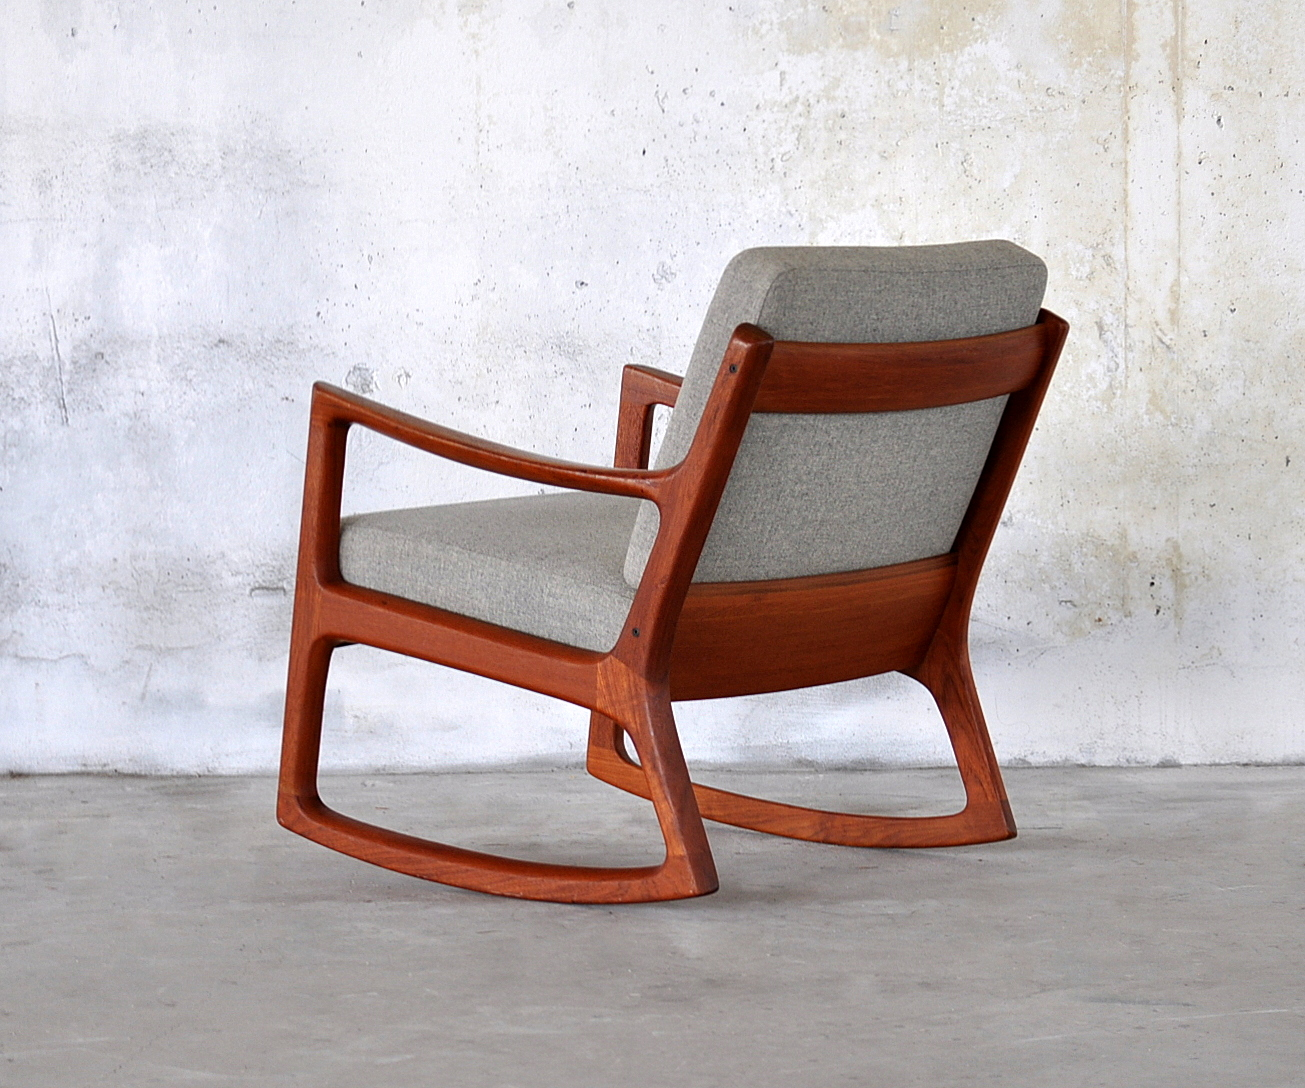 Surprising Comfy And Lovely Rocking Chair Plans Royals Courage Alphanode Cool Chair Designs And Ideas Alphanodeonline